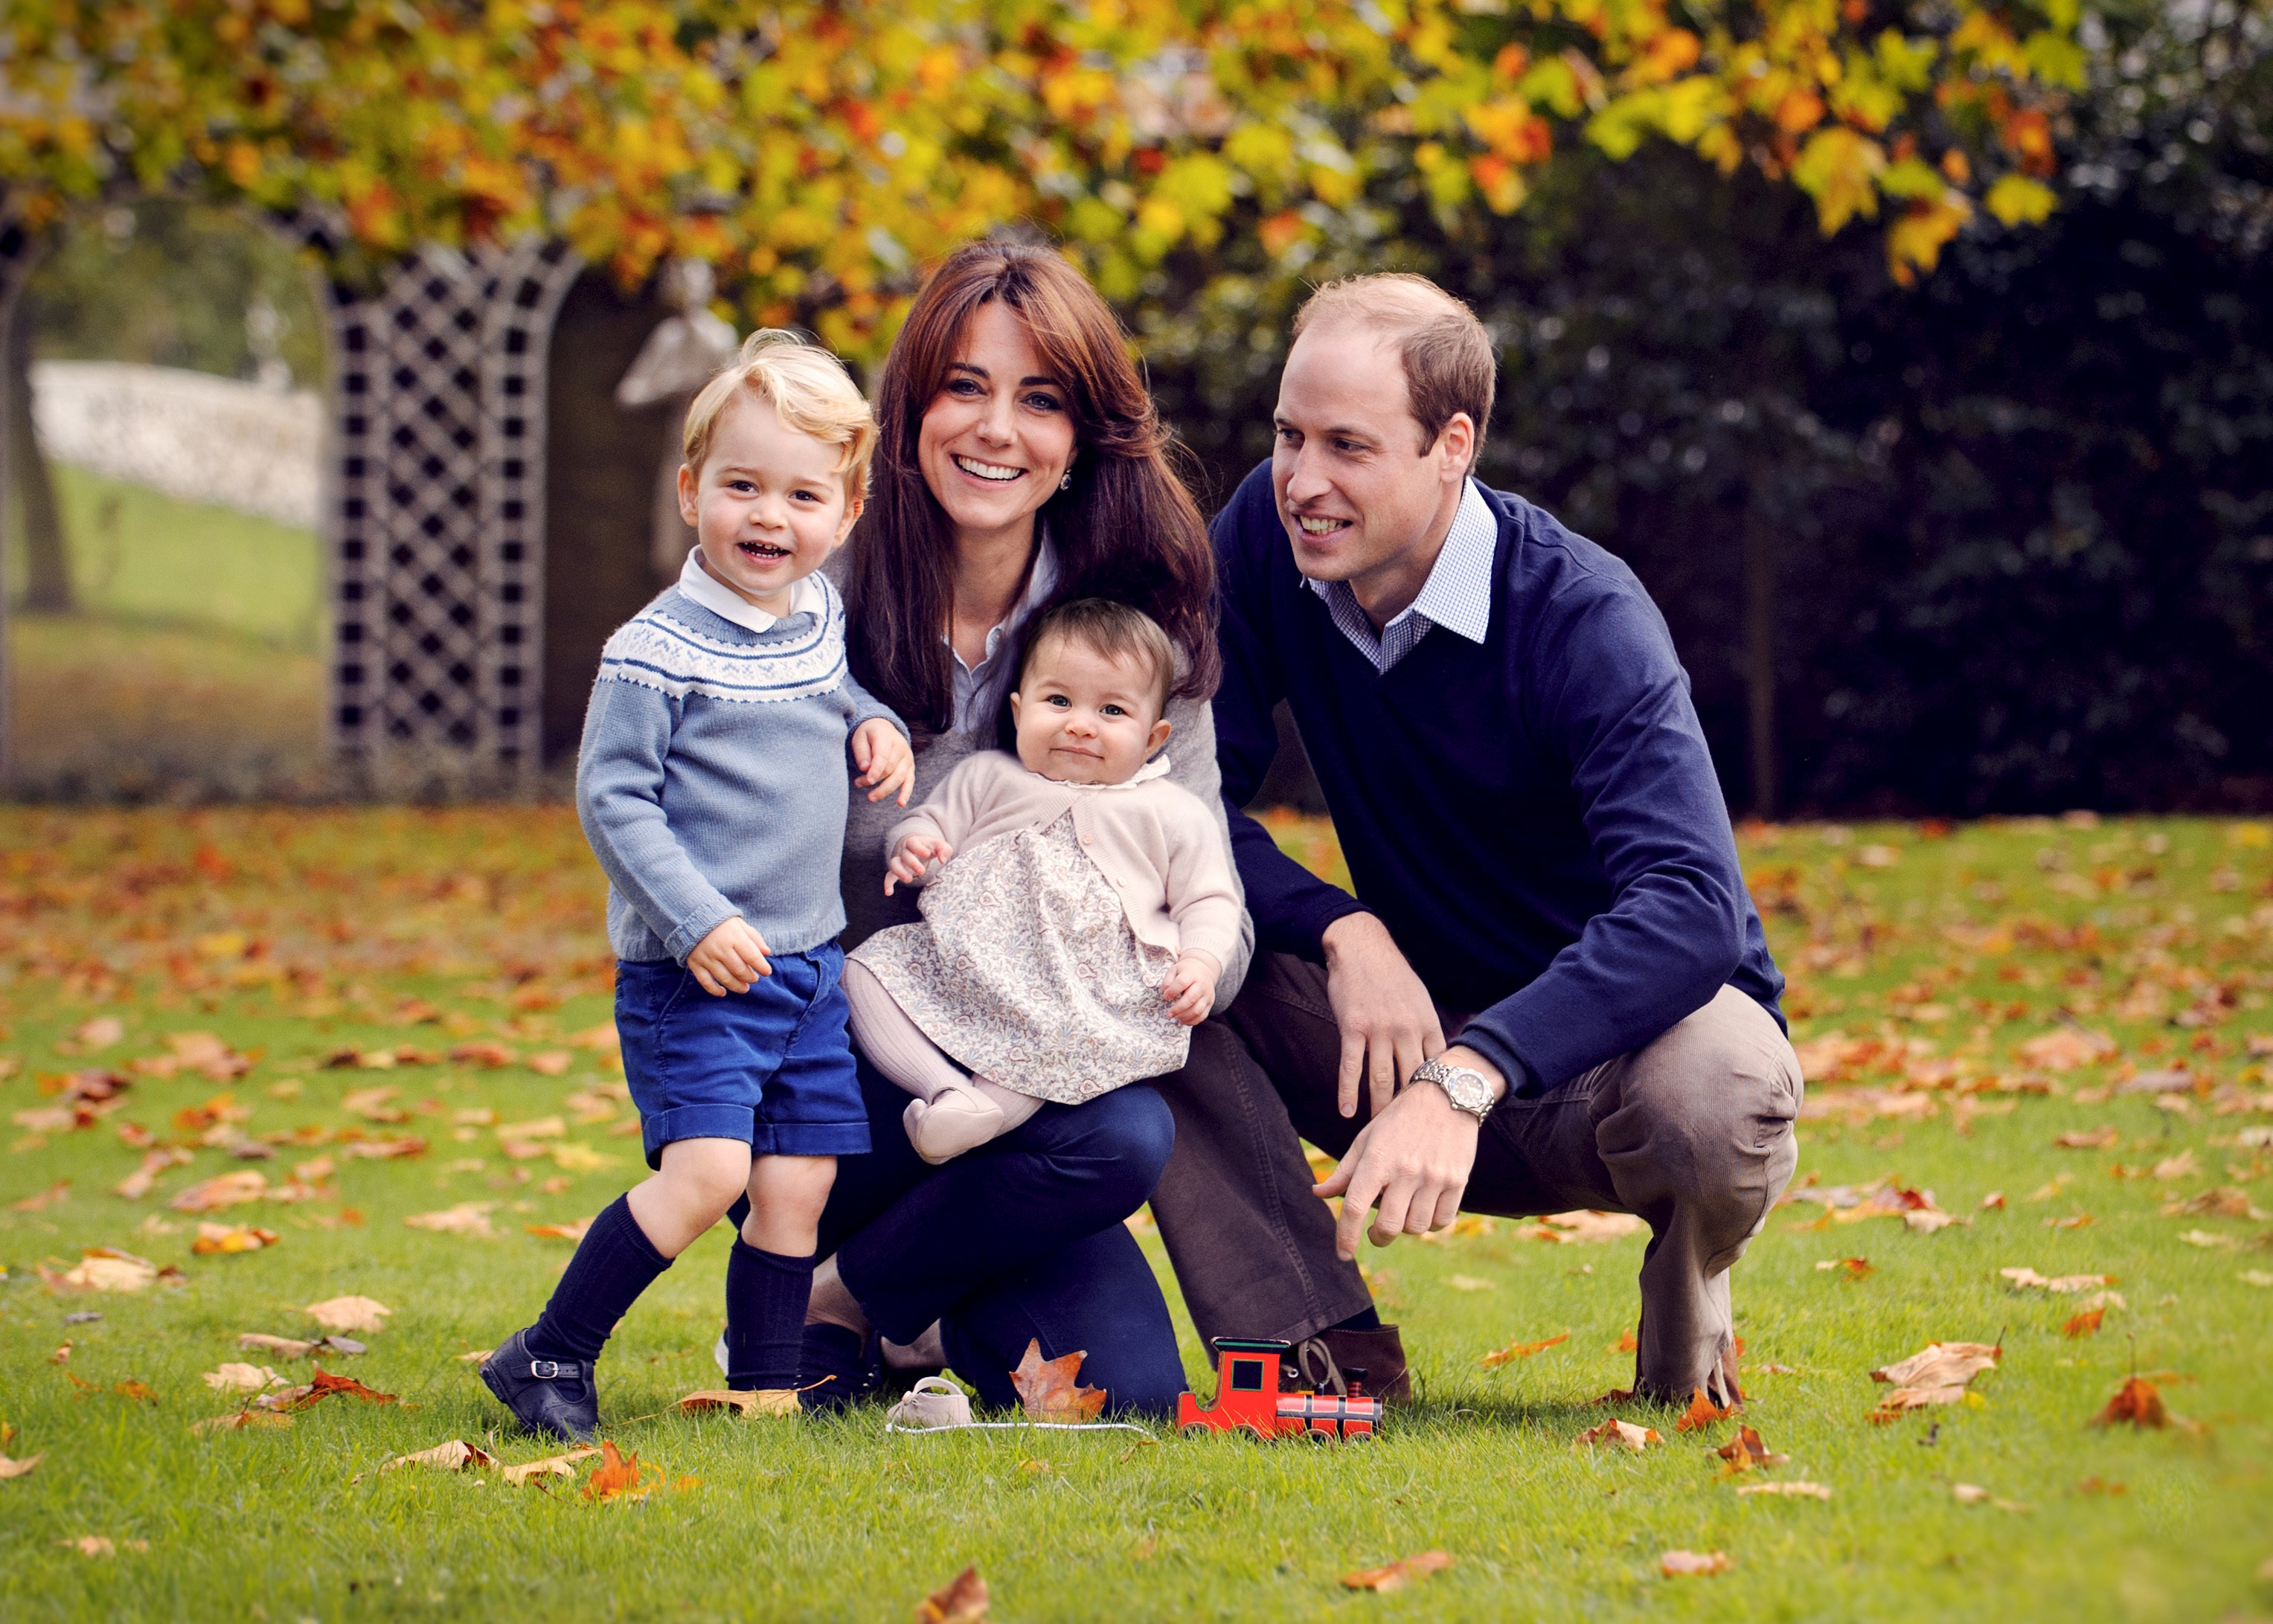 Britain's Prince William, his wife Kate, and their children George (L) and Charlotte pose in a photo  taken in late October 2015. Photo: Reuters